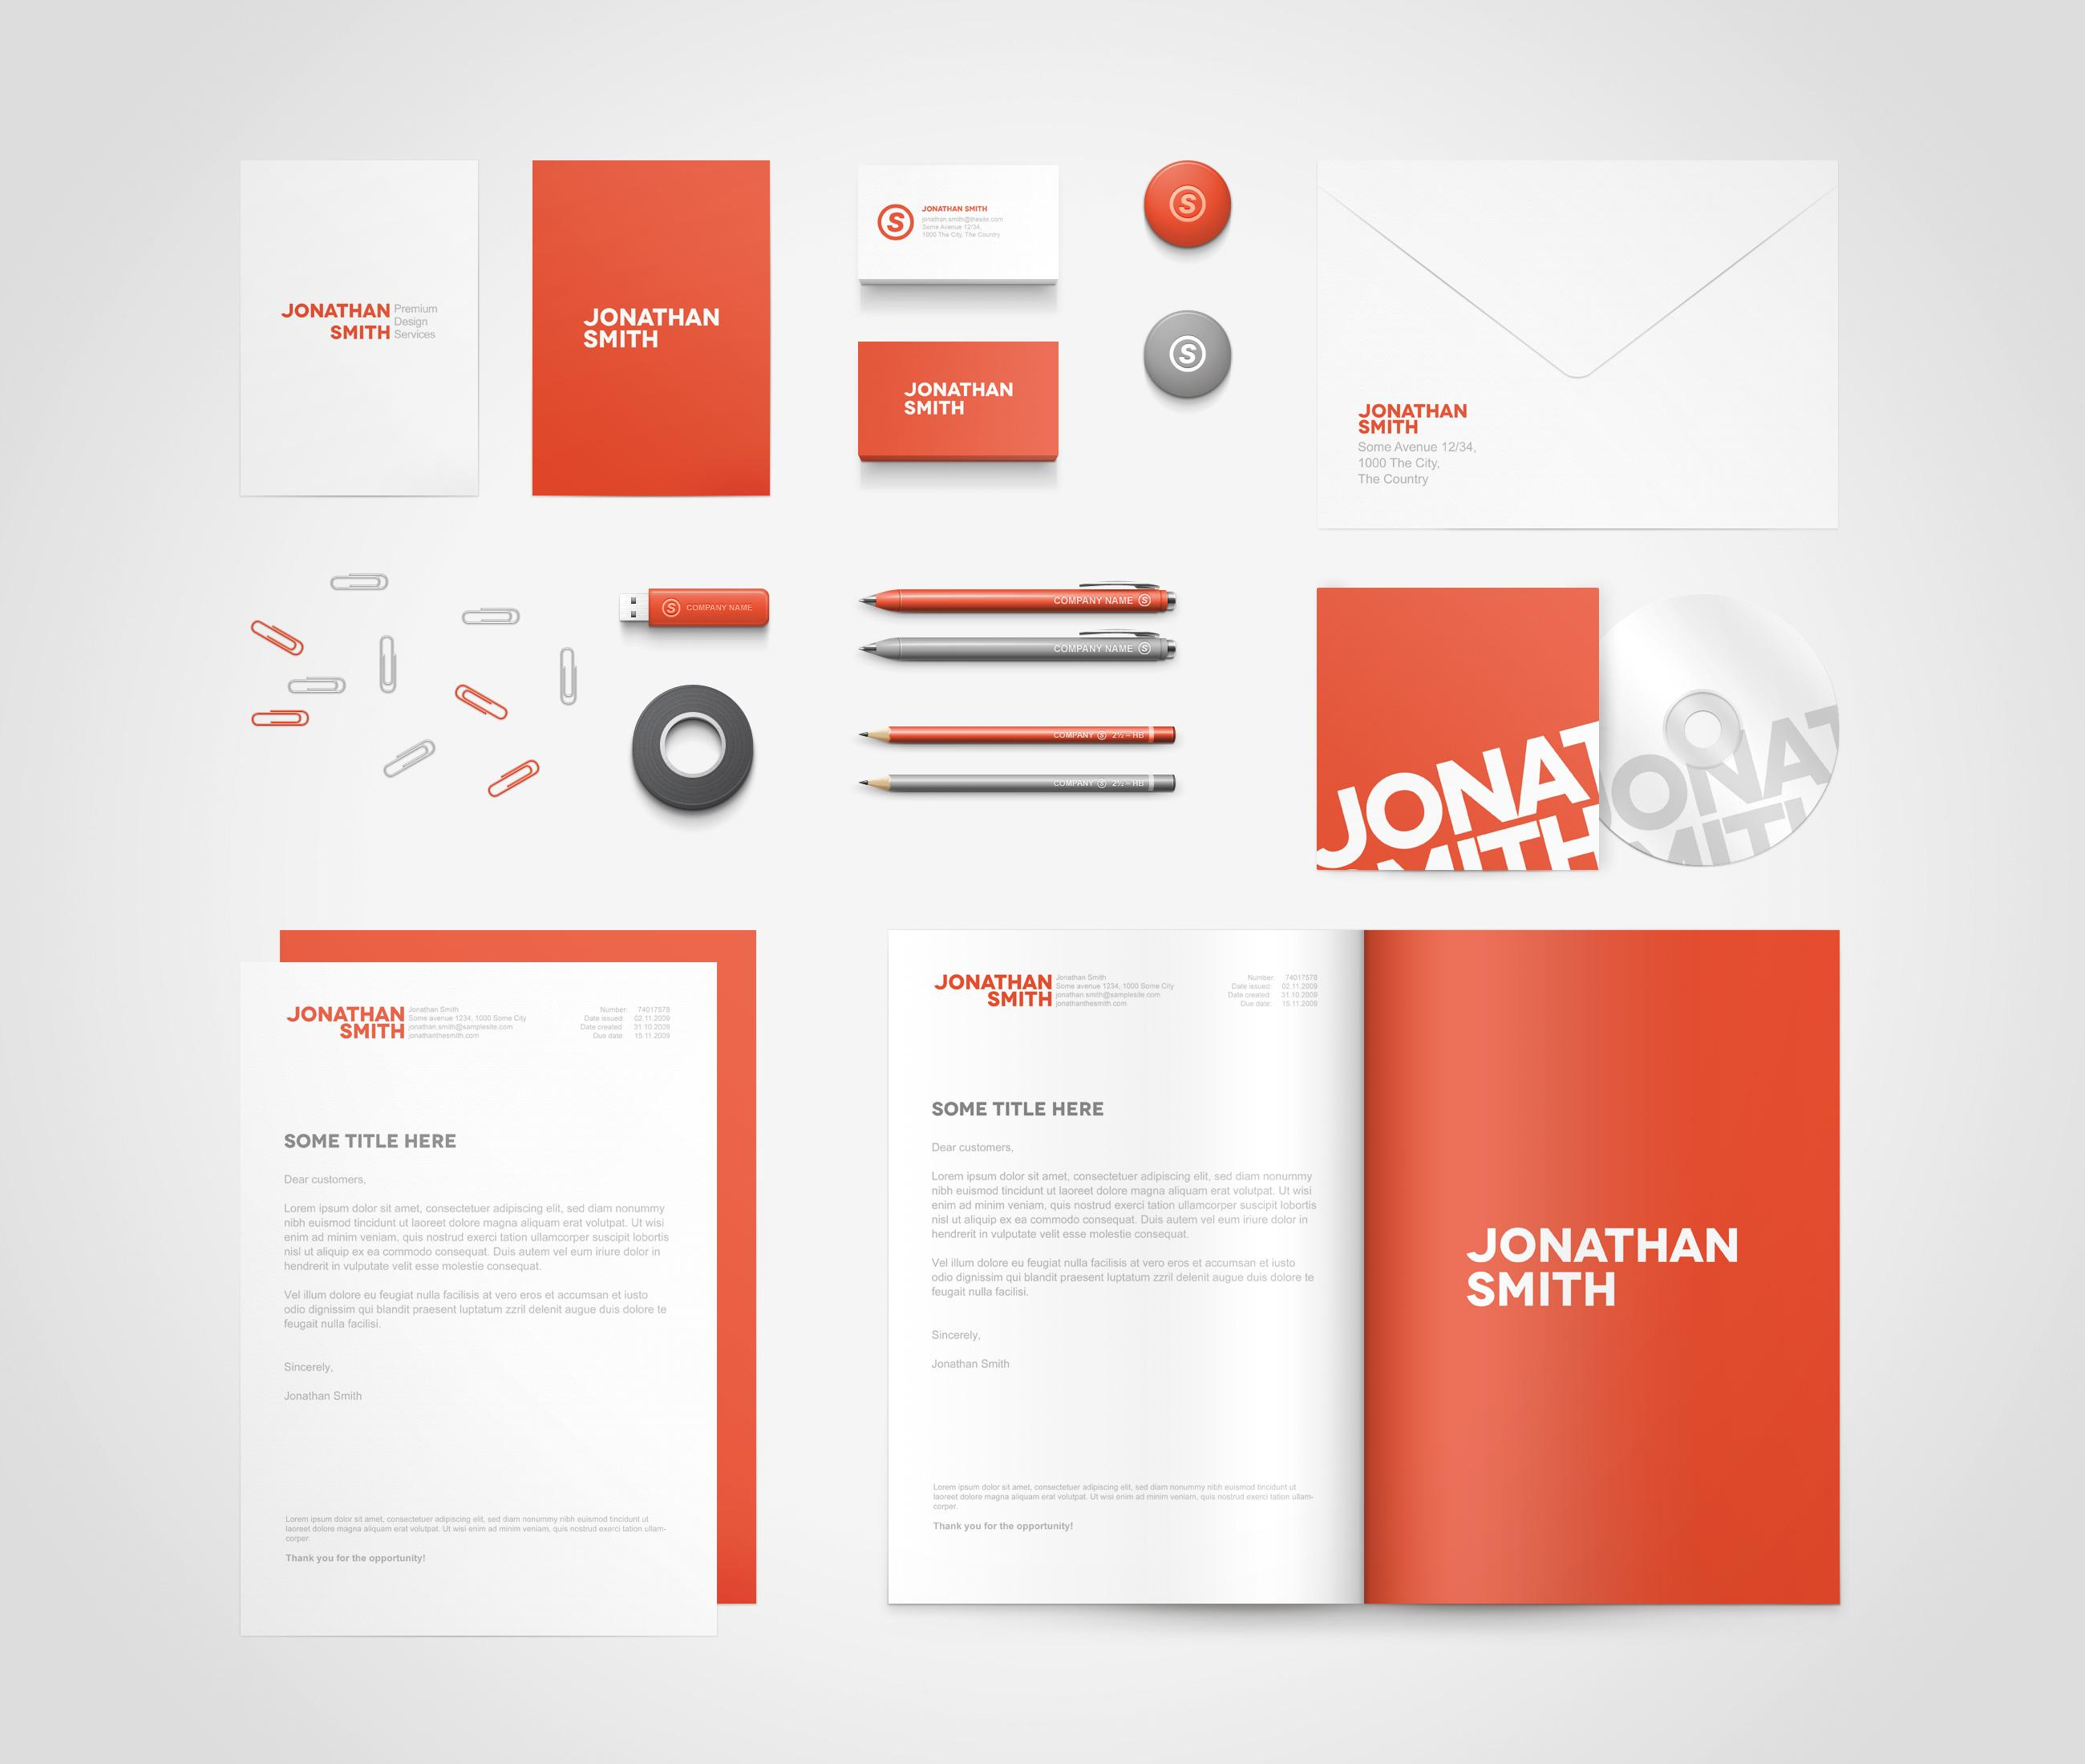 birds-eye-view-stationery-mock-up.jpg (2600×2200)